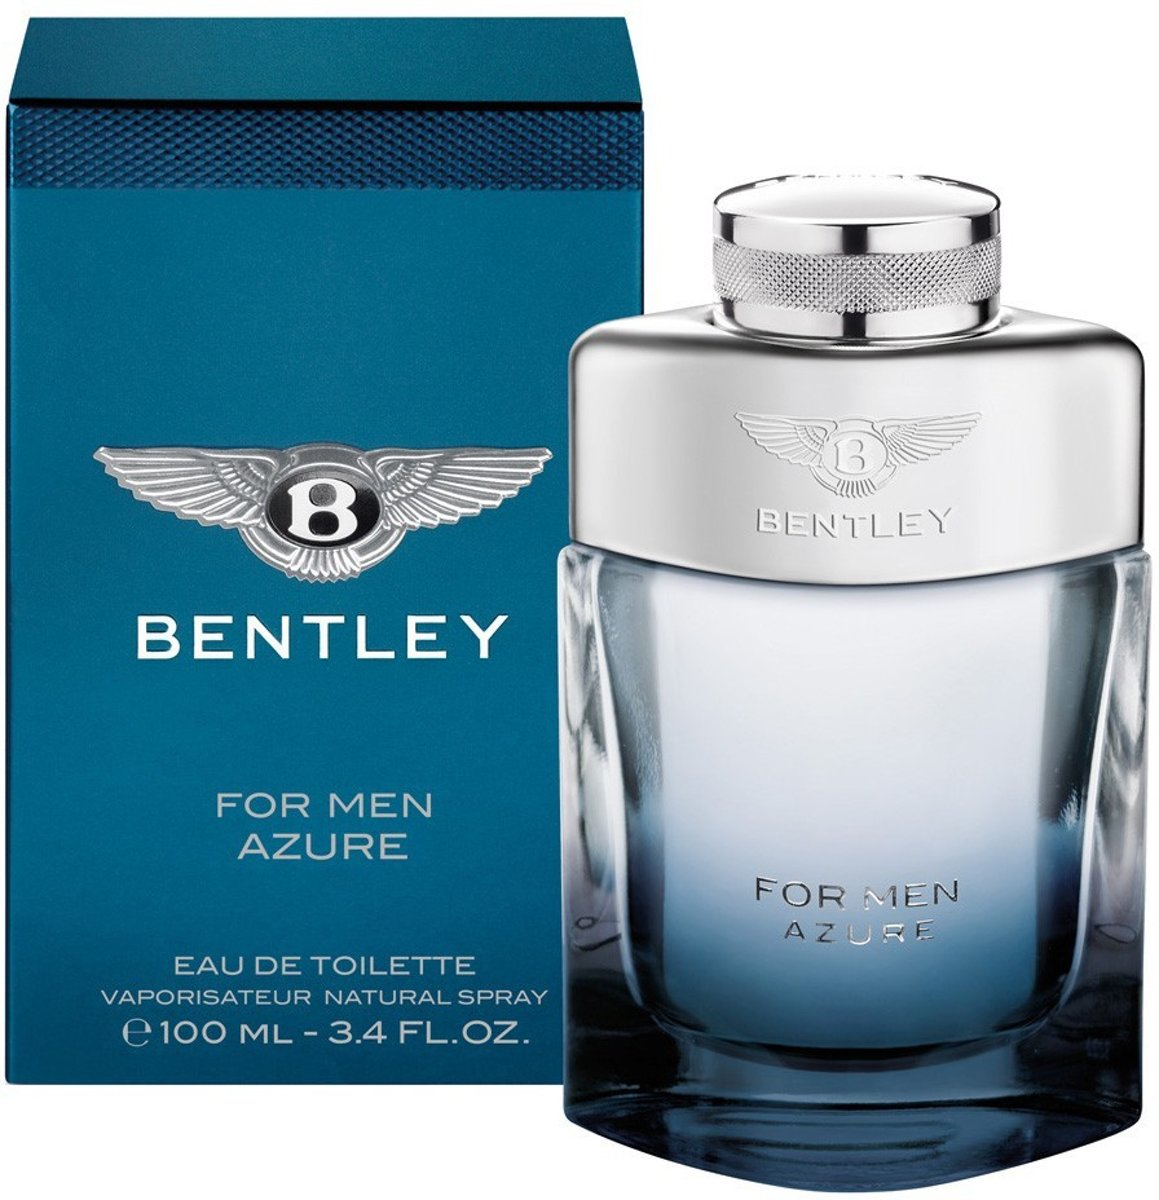 Bentley Azure 100 ml Eau De Toilette + Gratis 7 ml Eau De Toilette voor mannen